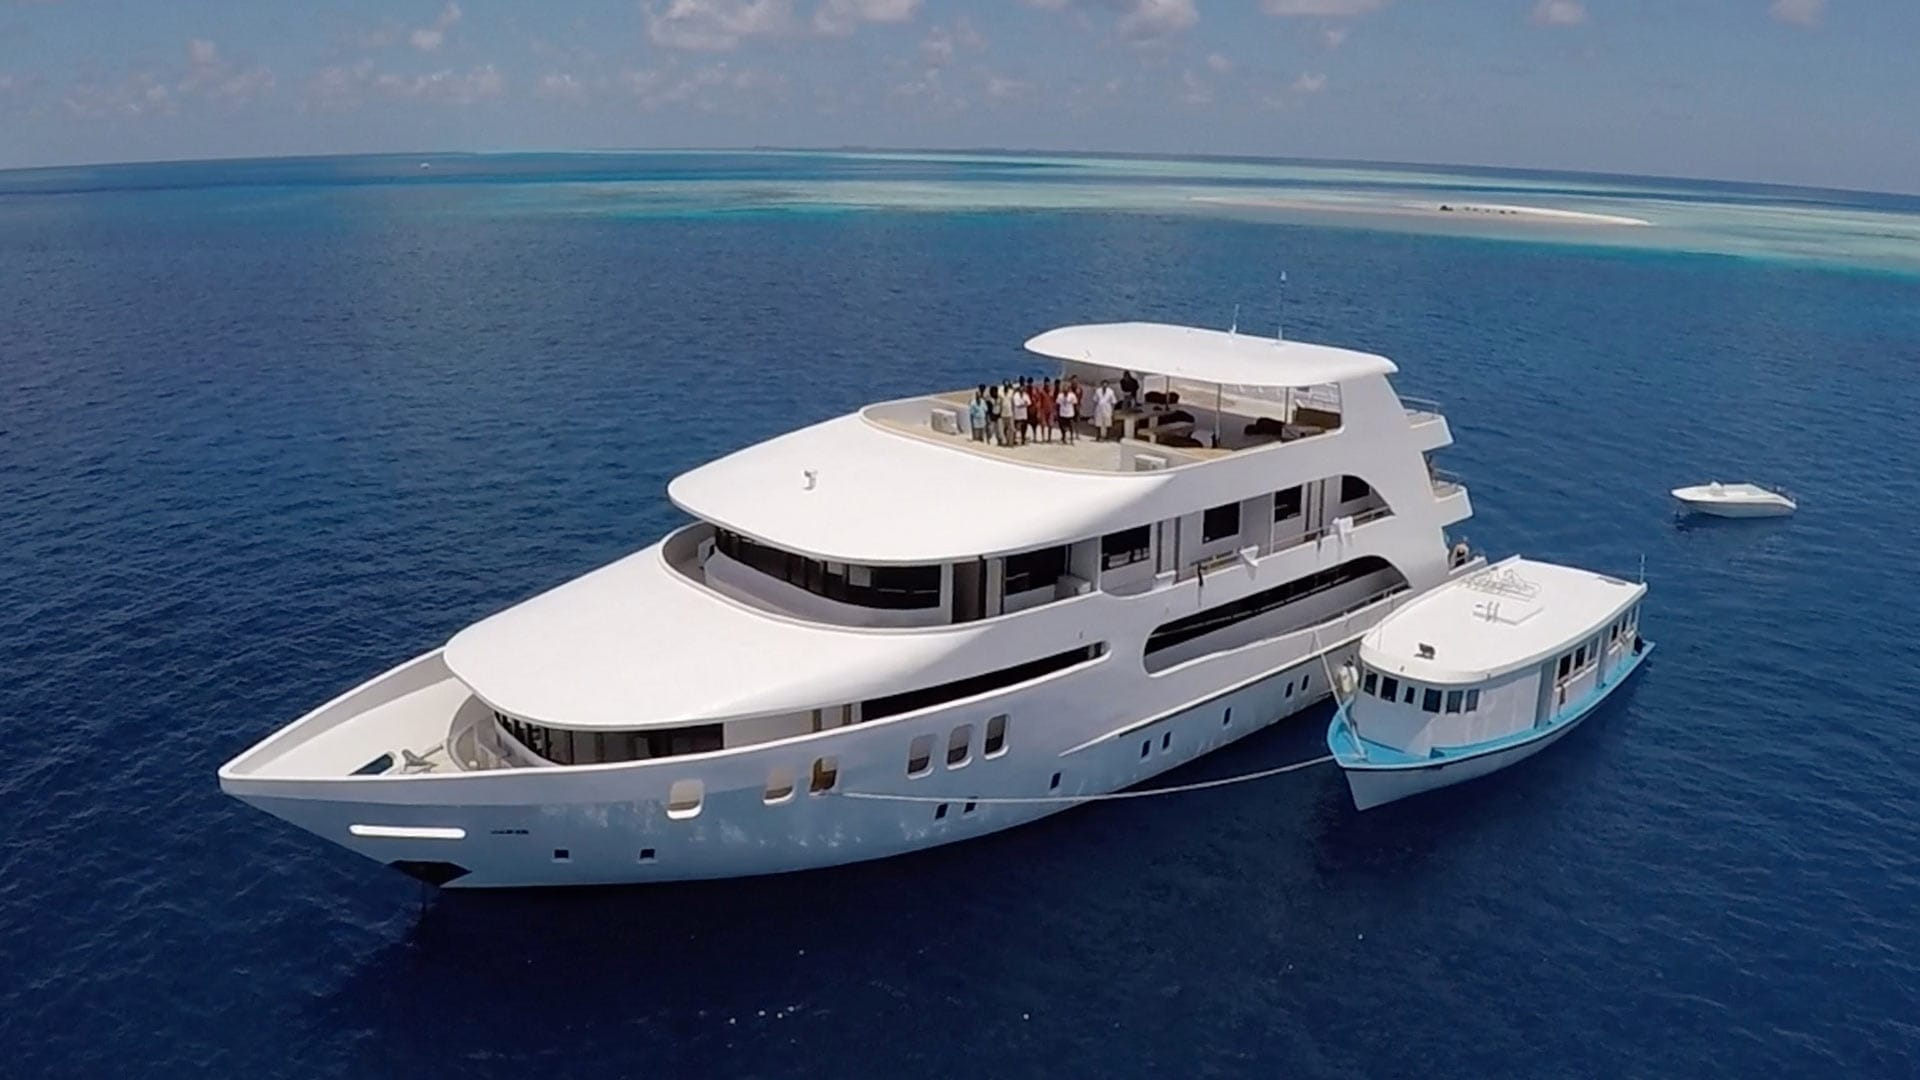 Adora Dive Liveaboard Maldives Droneview 2